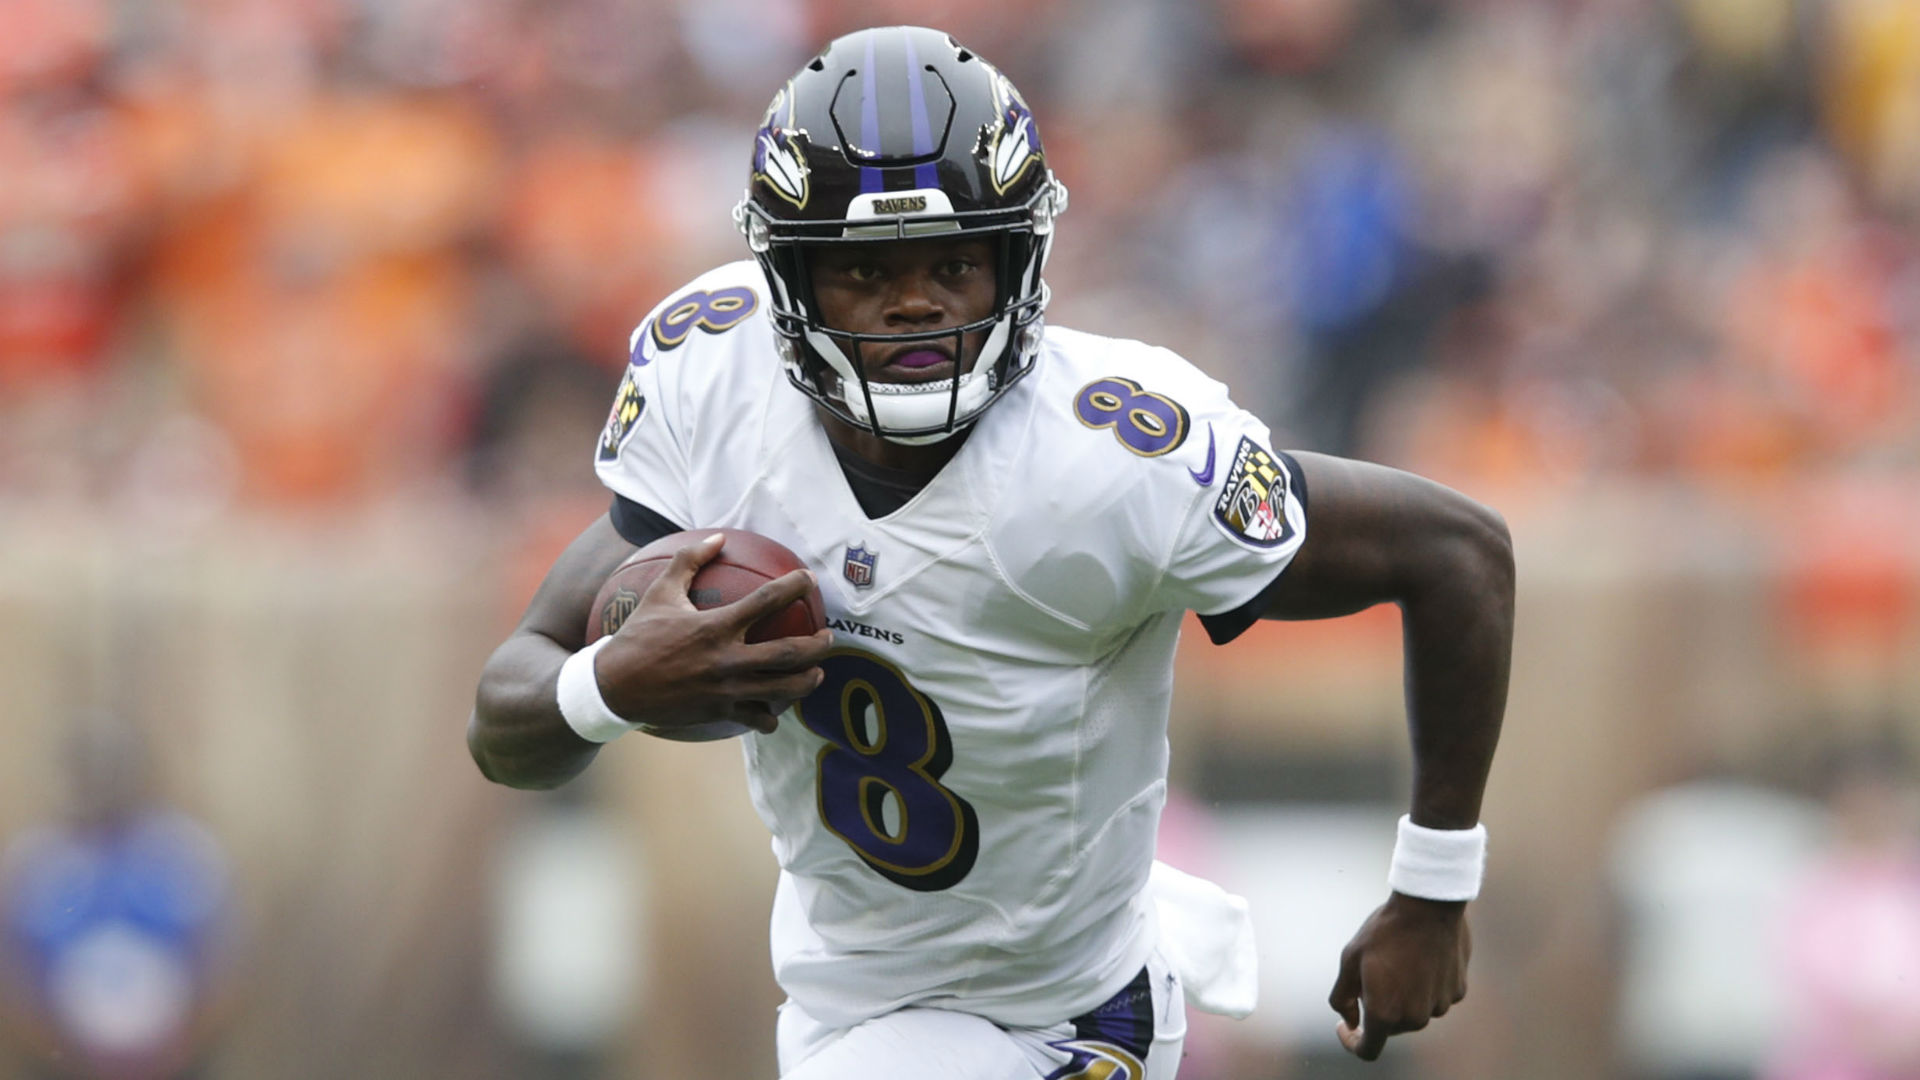 96d98f1af258 Michael Vick offers advice for Lamar Jackson | Sporting News